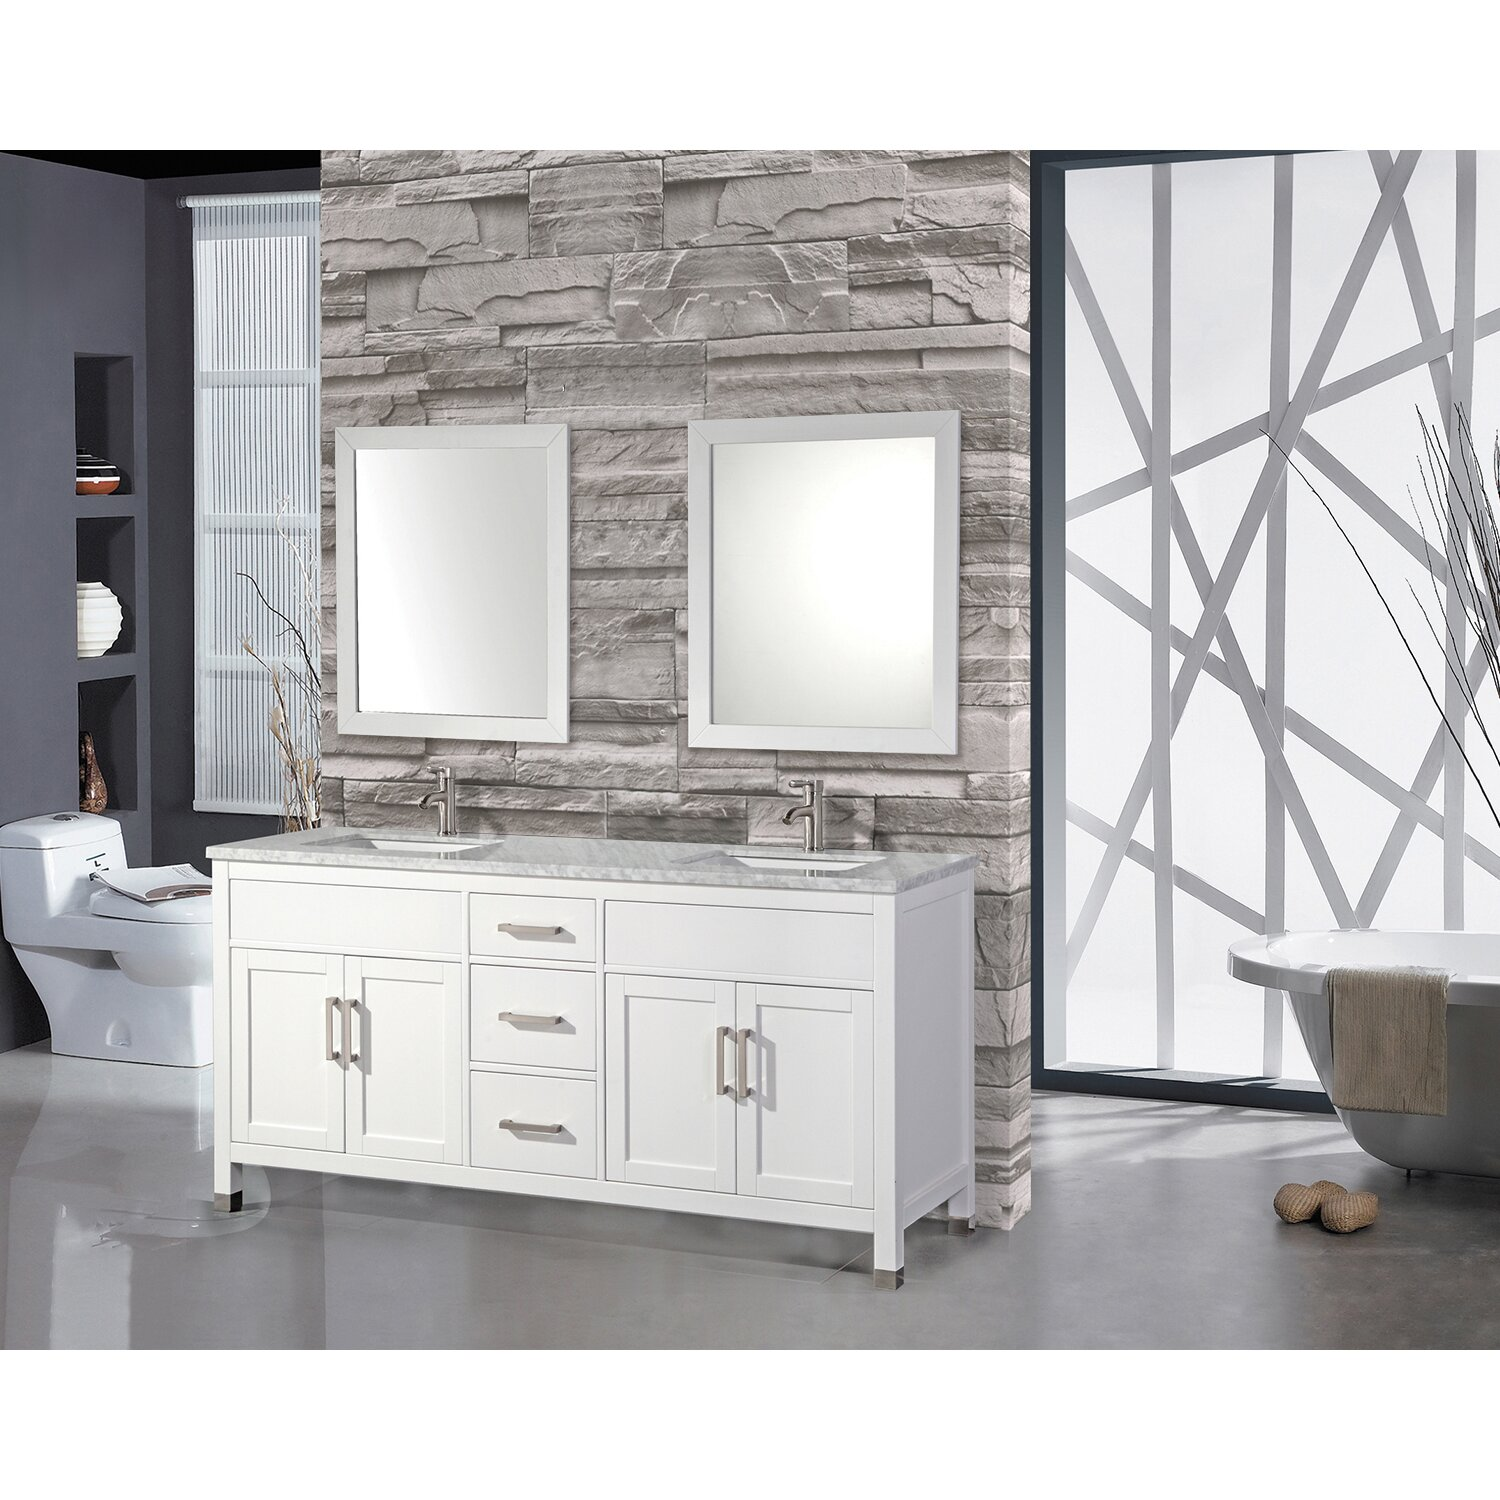 "mtdvanities ricca 84"" double sink bathroom vanity set with mirror"